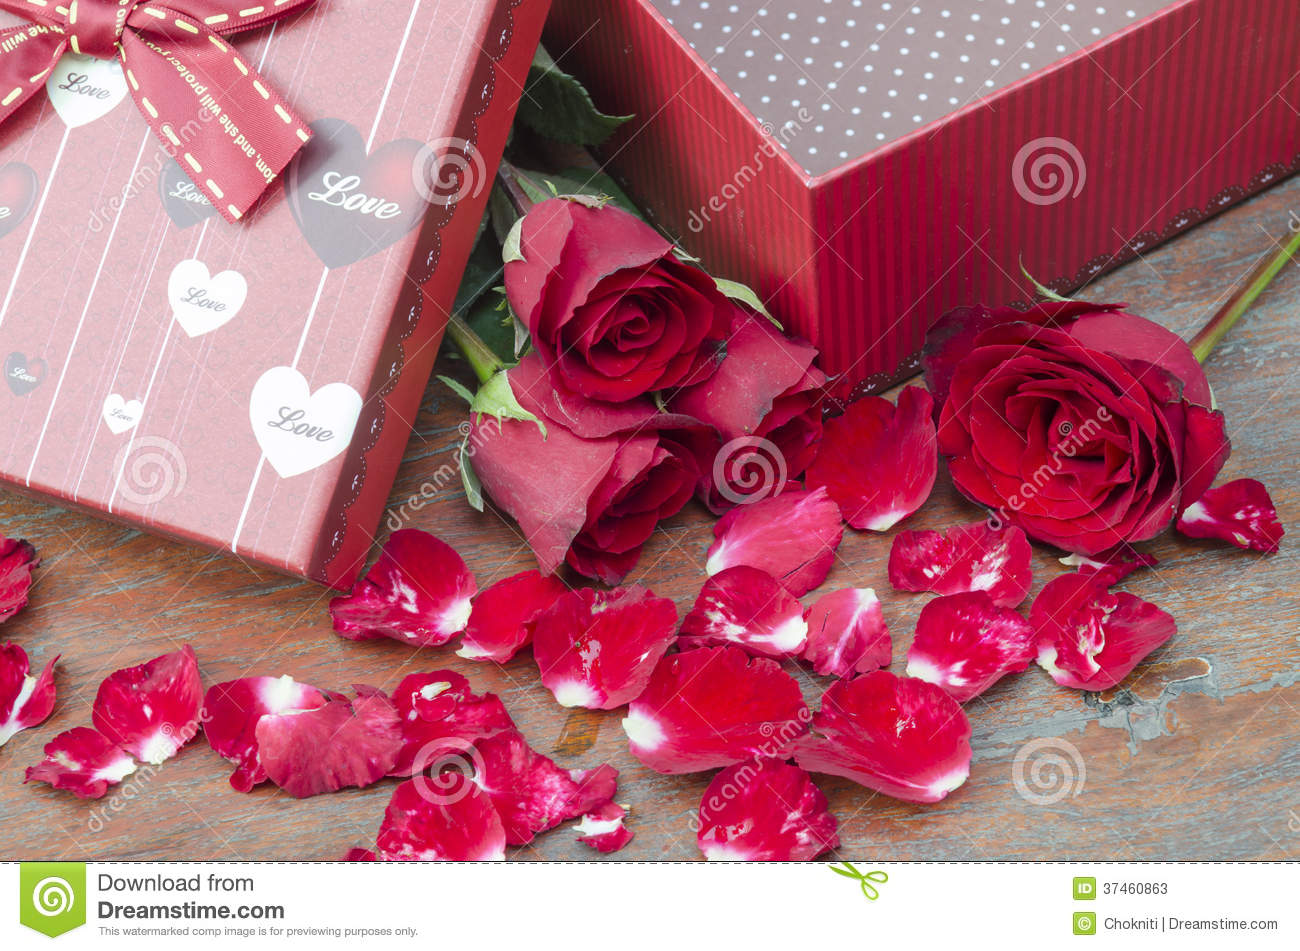 Roses Valentine S Day With Stuff Toys : Pictures of roses and gifts for valentine s day stock